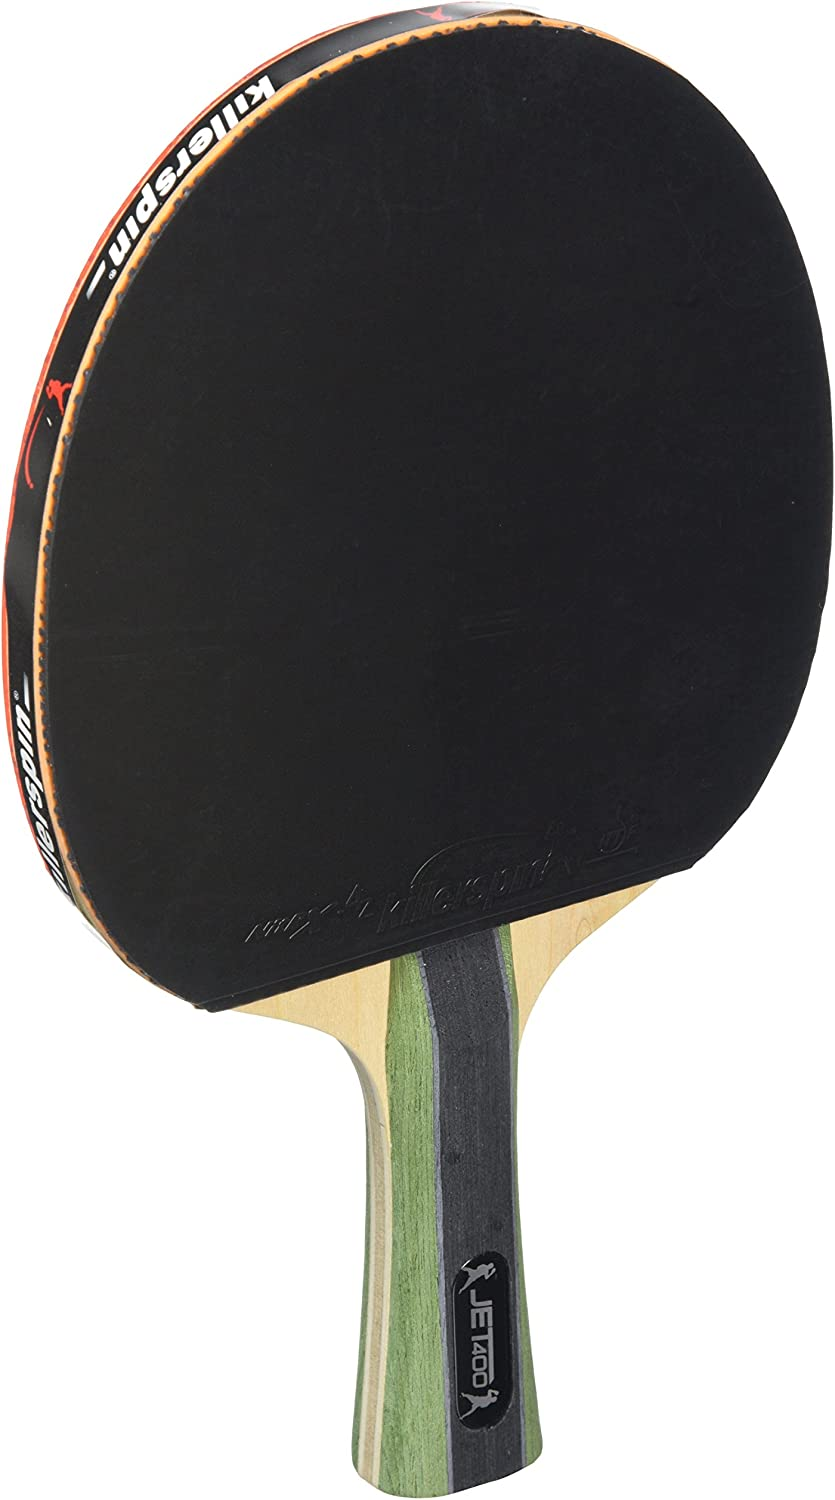 Killerspin La JET400 Smash N1 Pala de Tenis de Mesa, Unisex-Adult, Multicolor-Multicolor, One Size